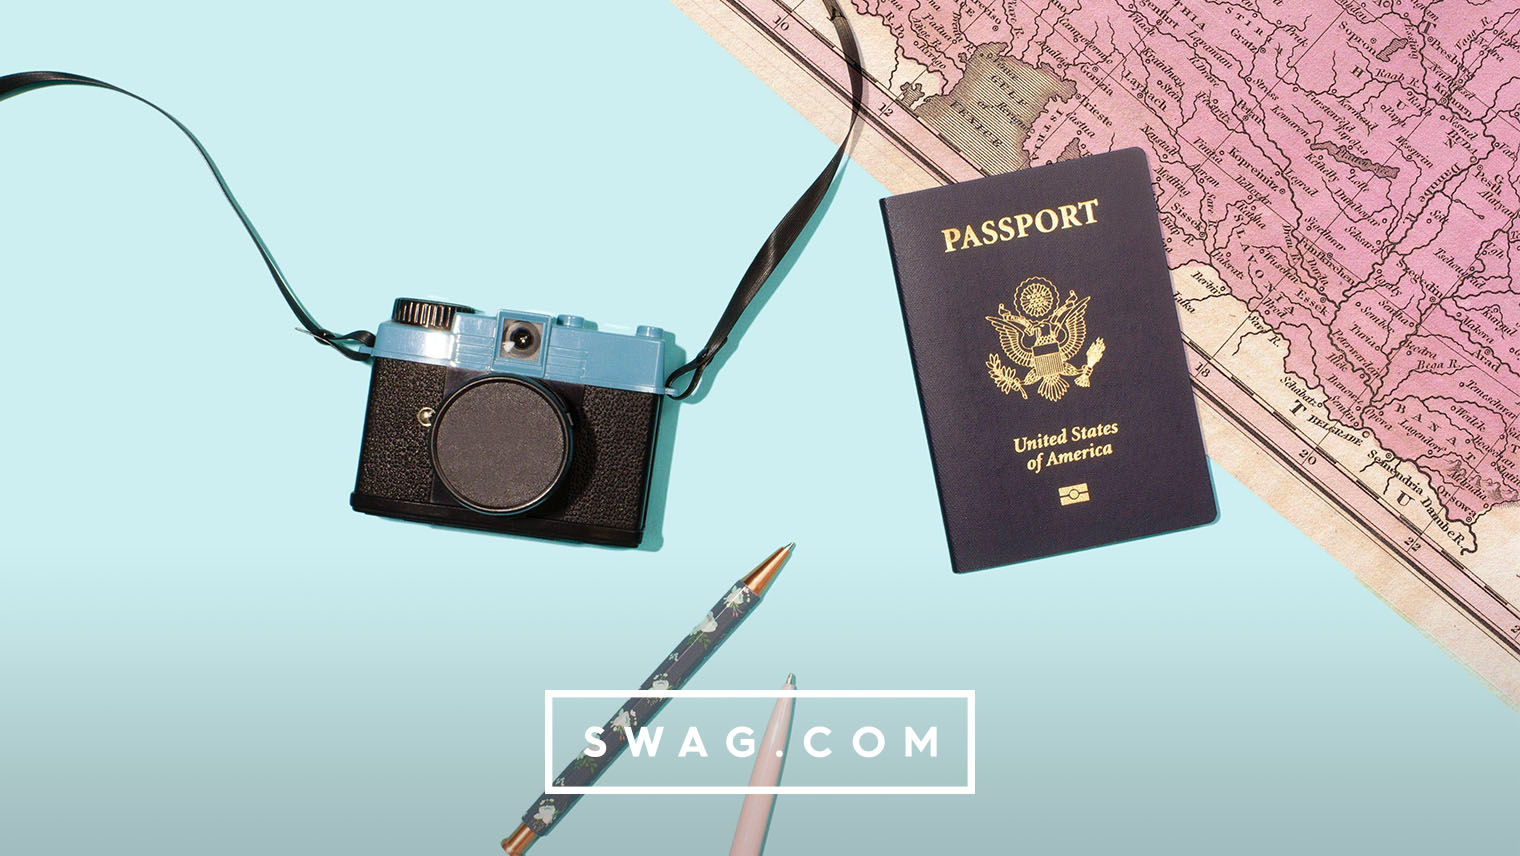 Travel Swag & Promotional Travel Products for Vacations